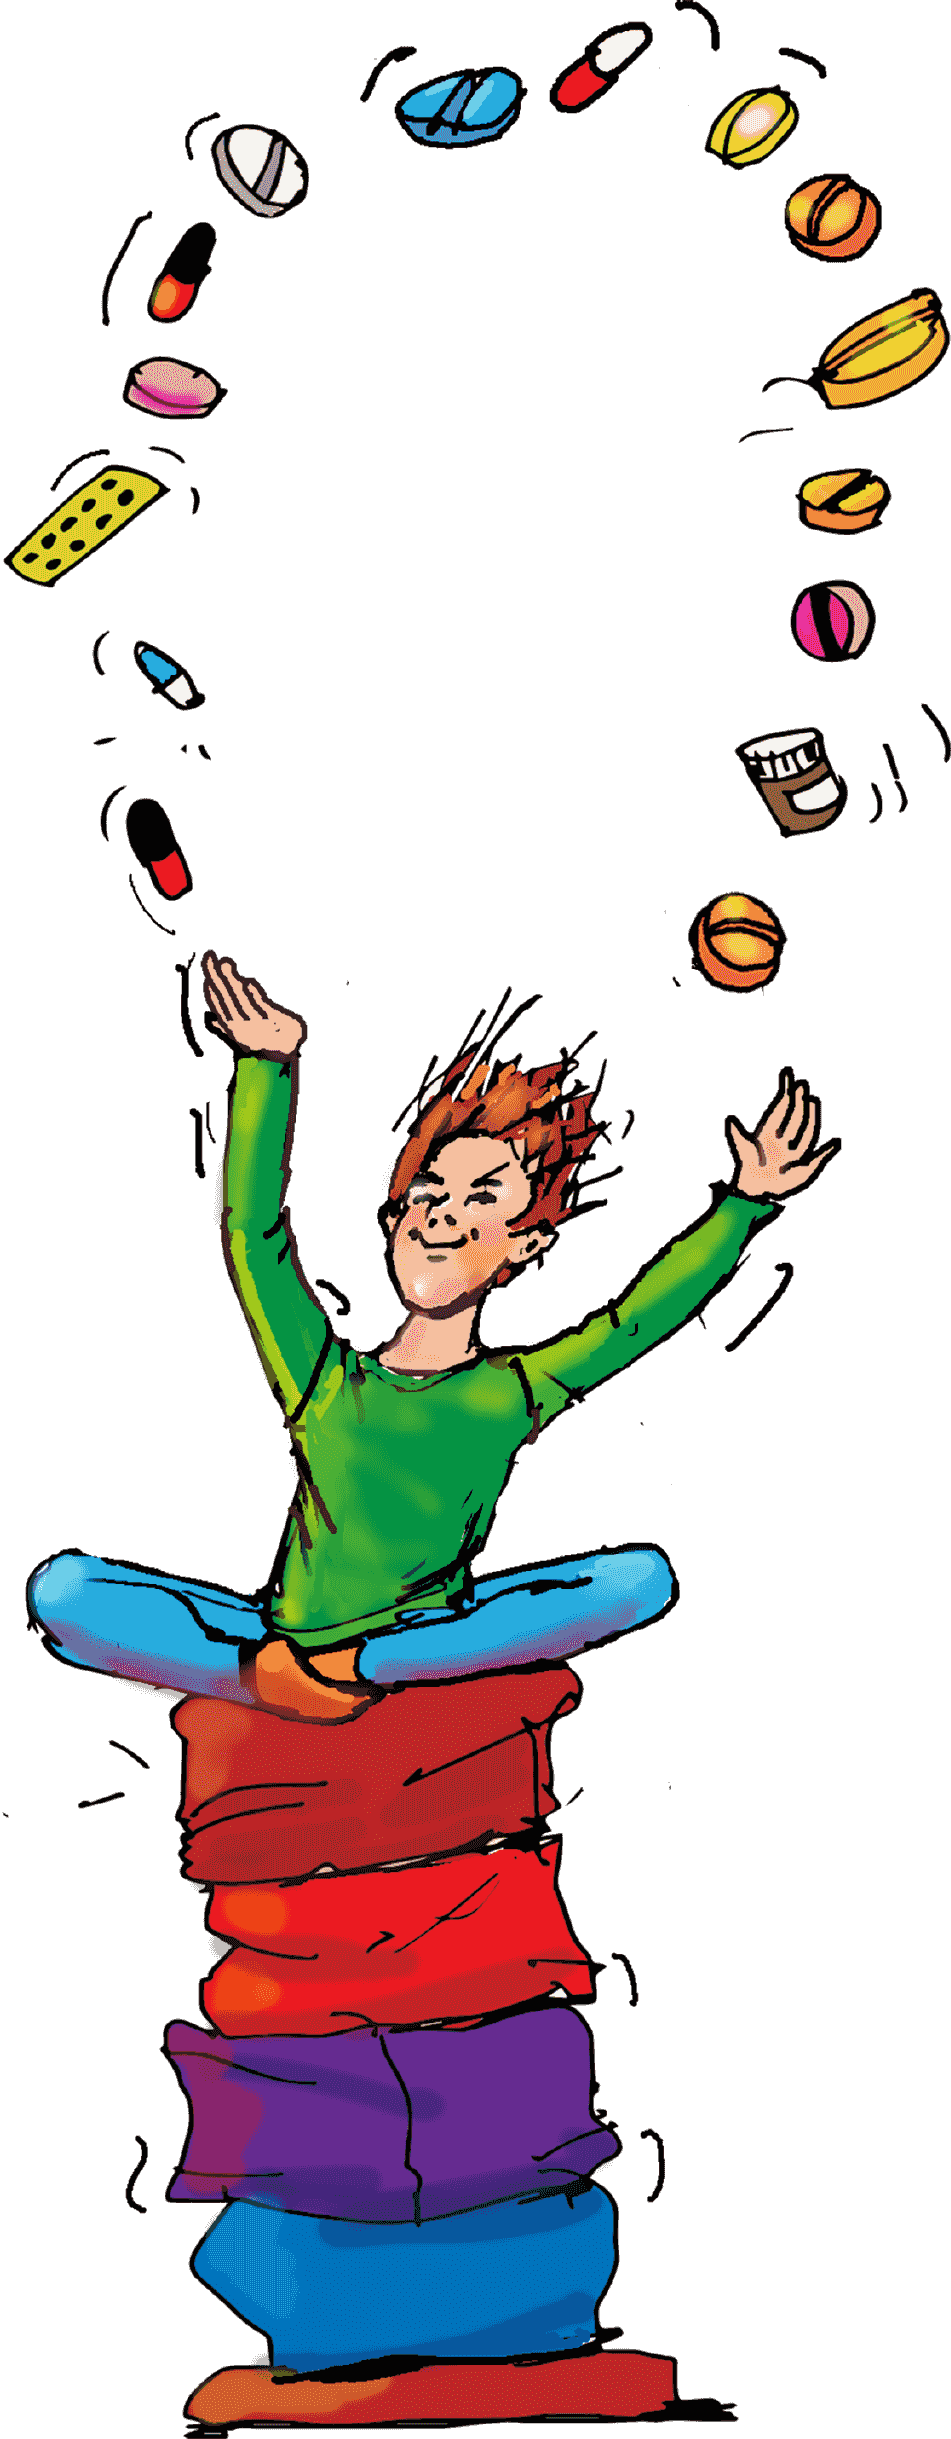 Medication clipart happy pill. Childhood adhd meditation or